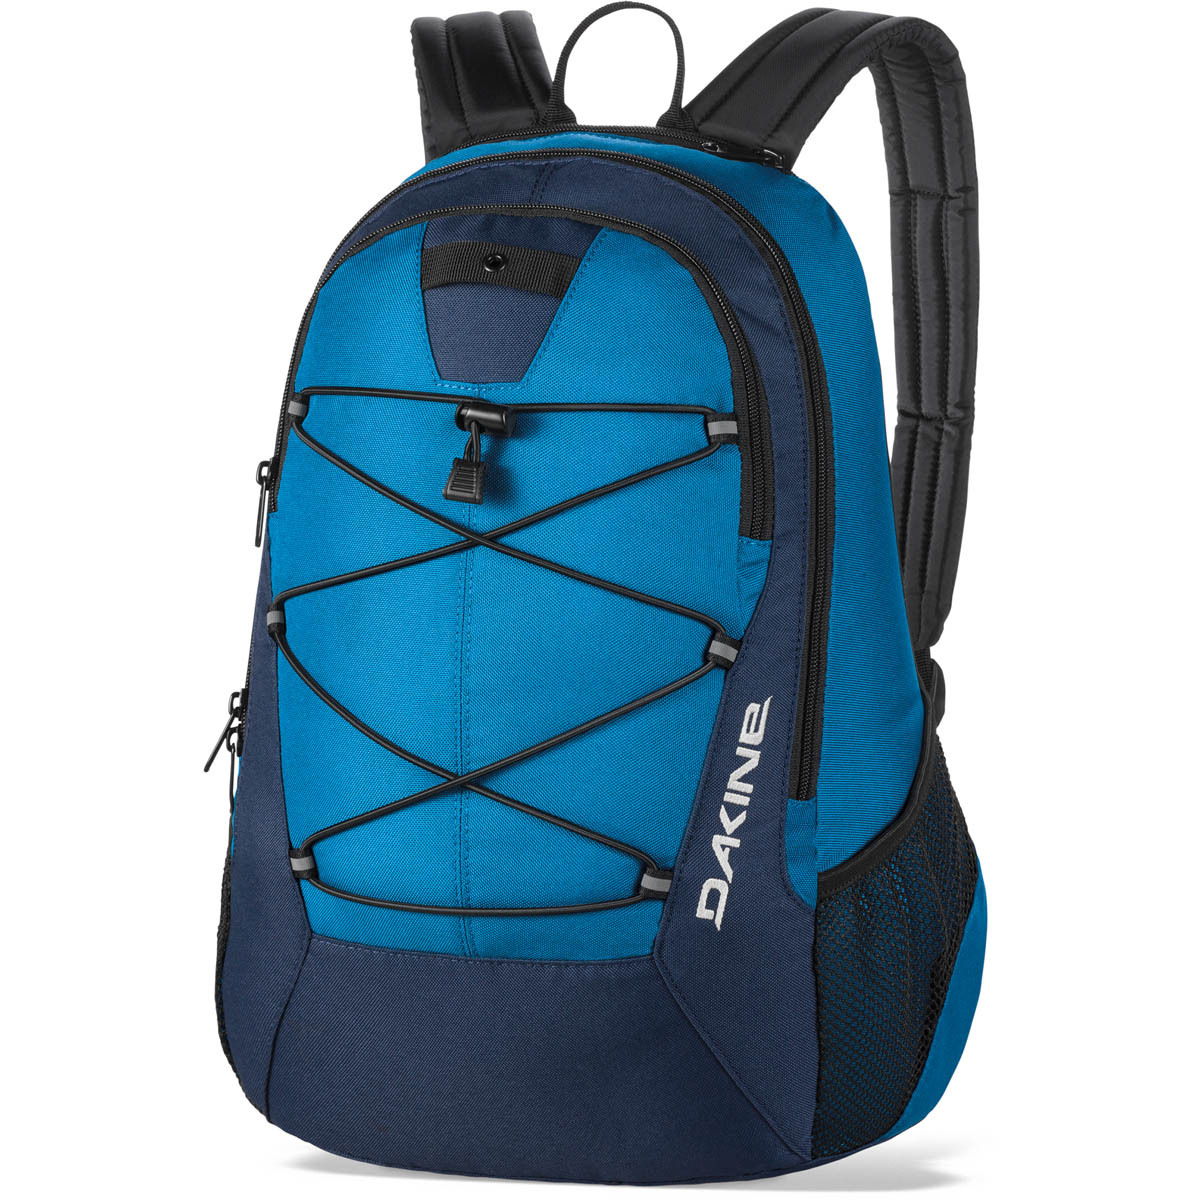 Для путешествий Рюкзак Dakine TRANSIT 18L  BLUES 2016S-08130072-TRANSIT-BLUES.jpg